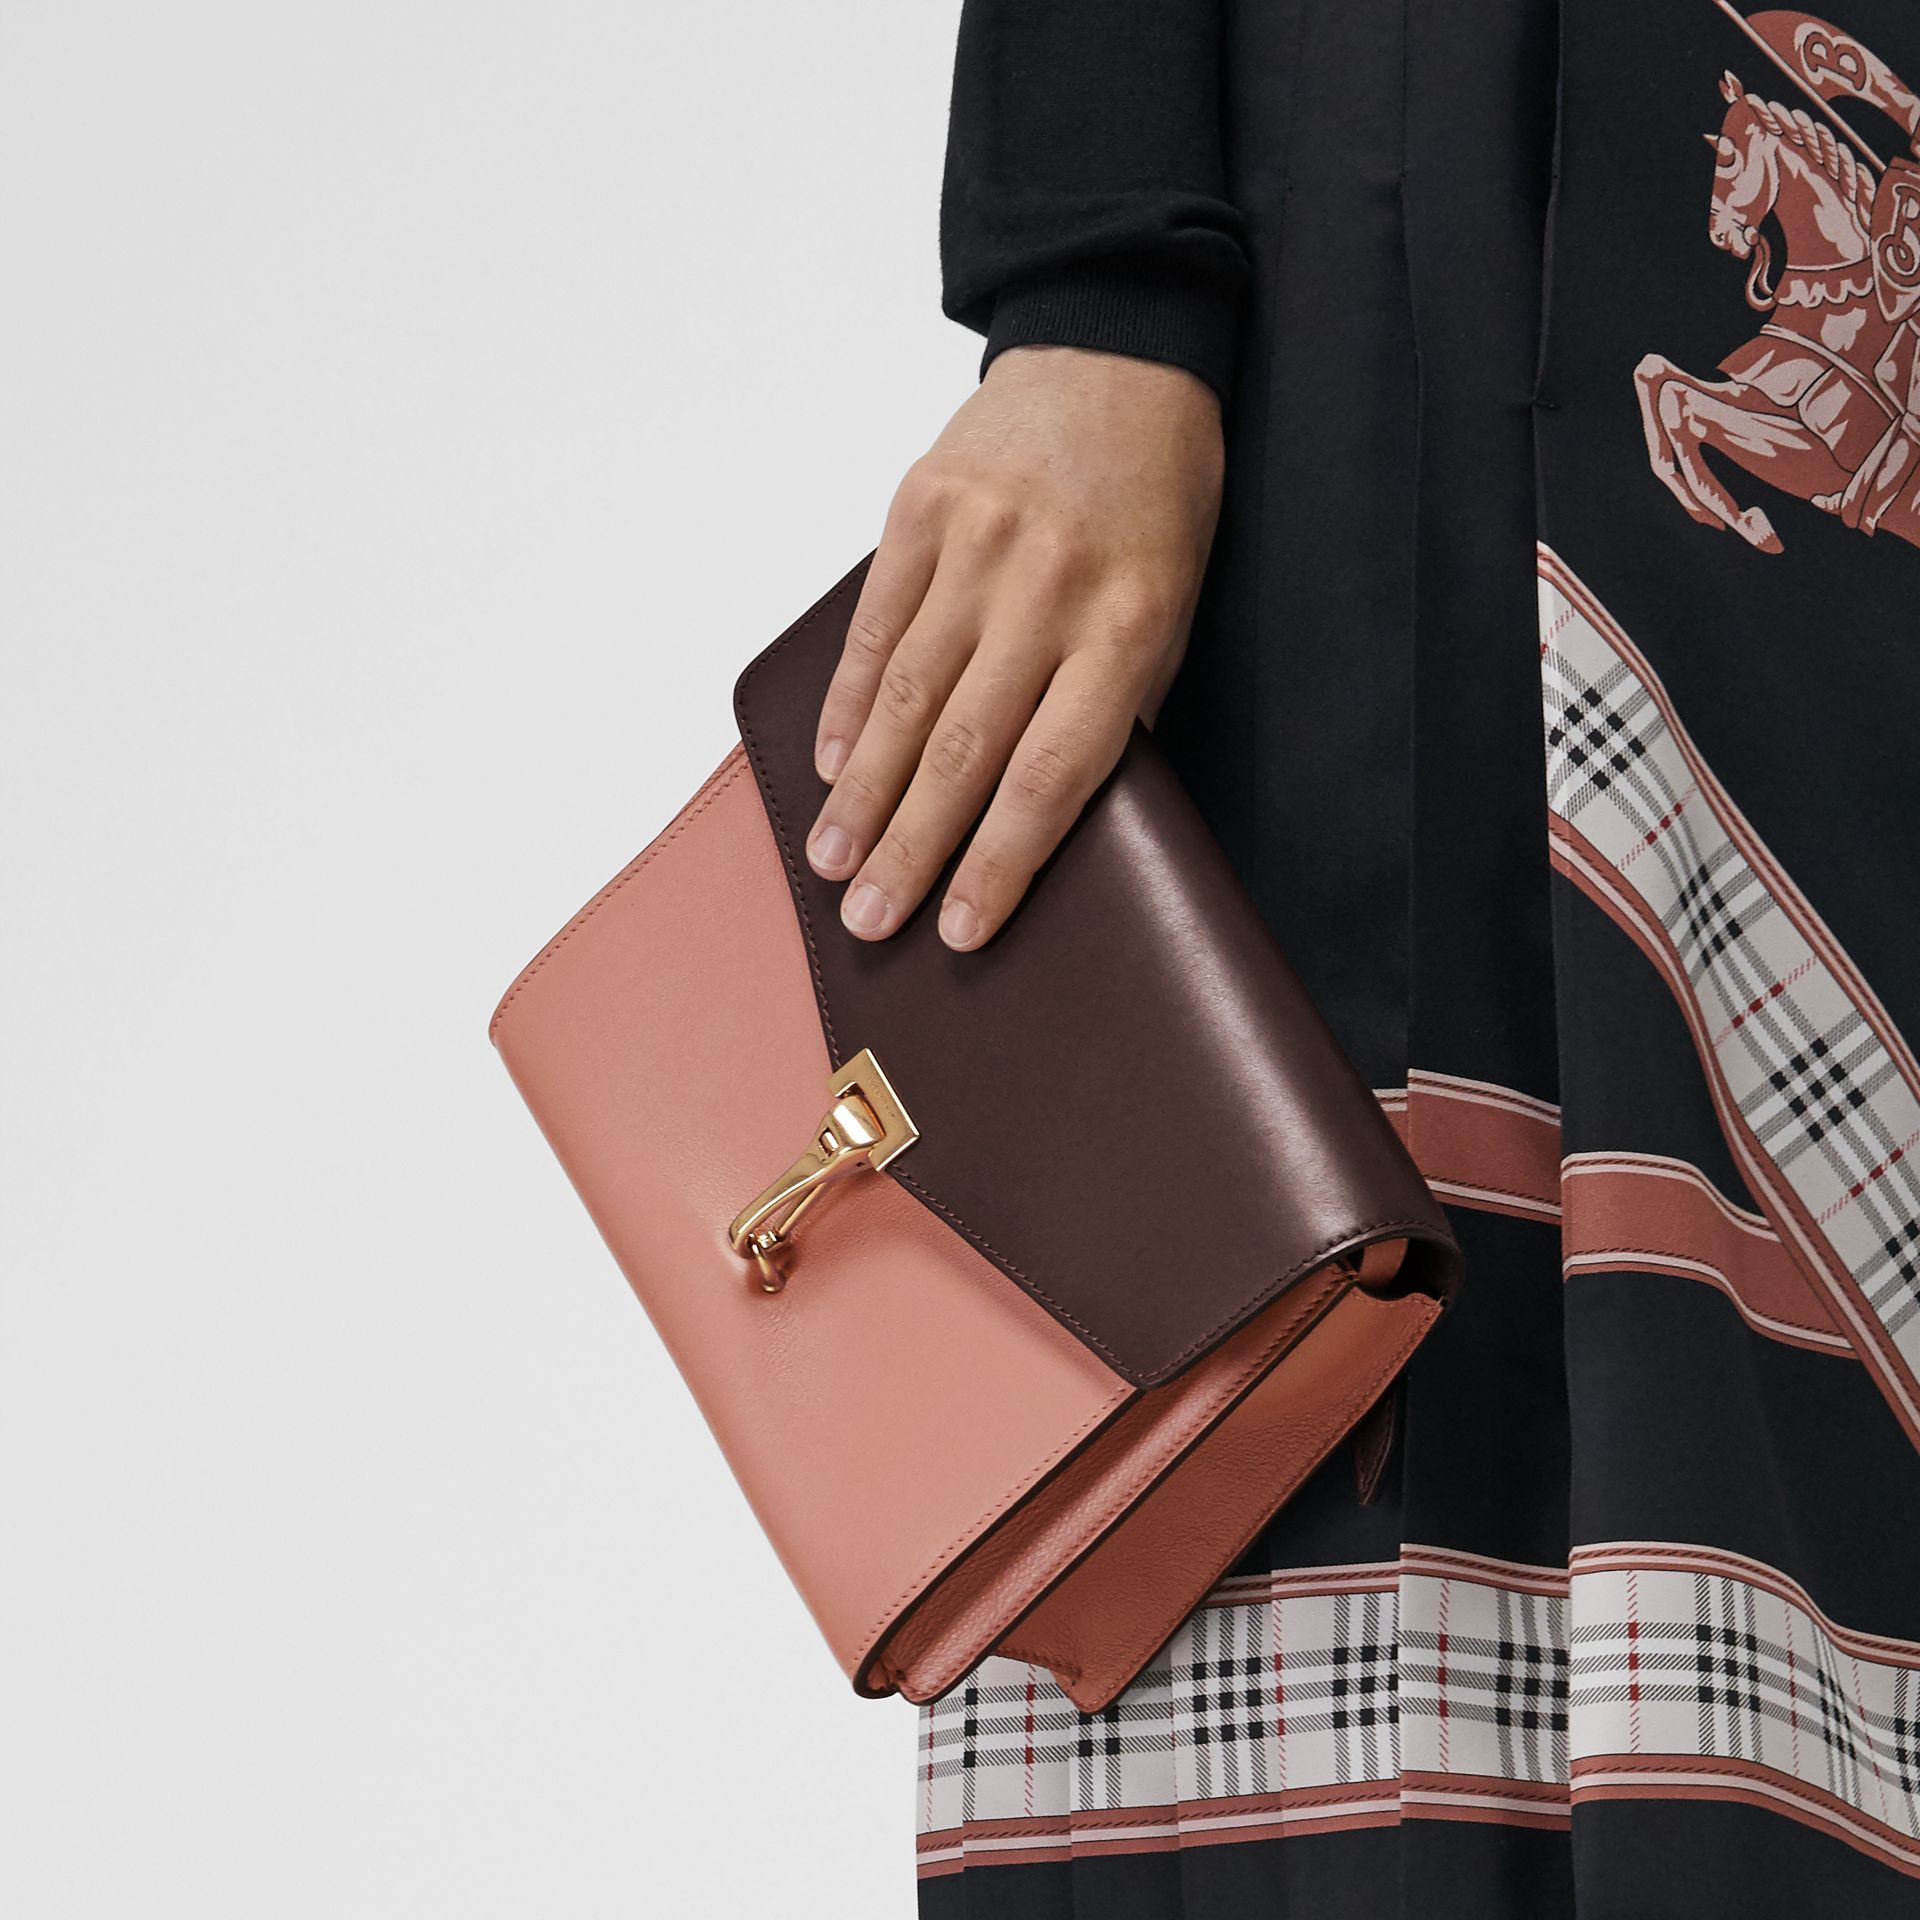 Two-tone Leather Crossbody Bag in Dusty Rose/deep Claret - Women | Burberry United Kingdom - gallery image 3